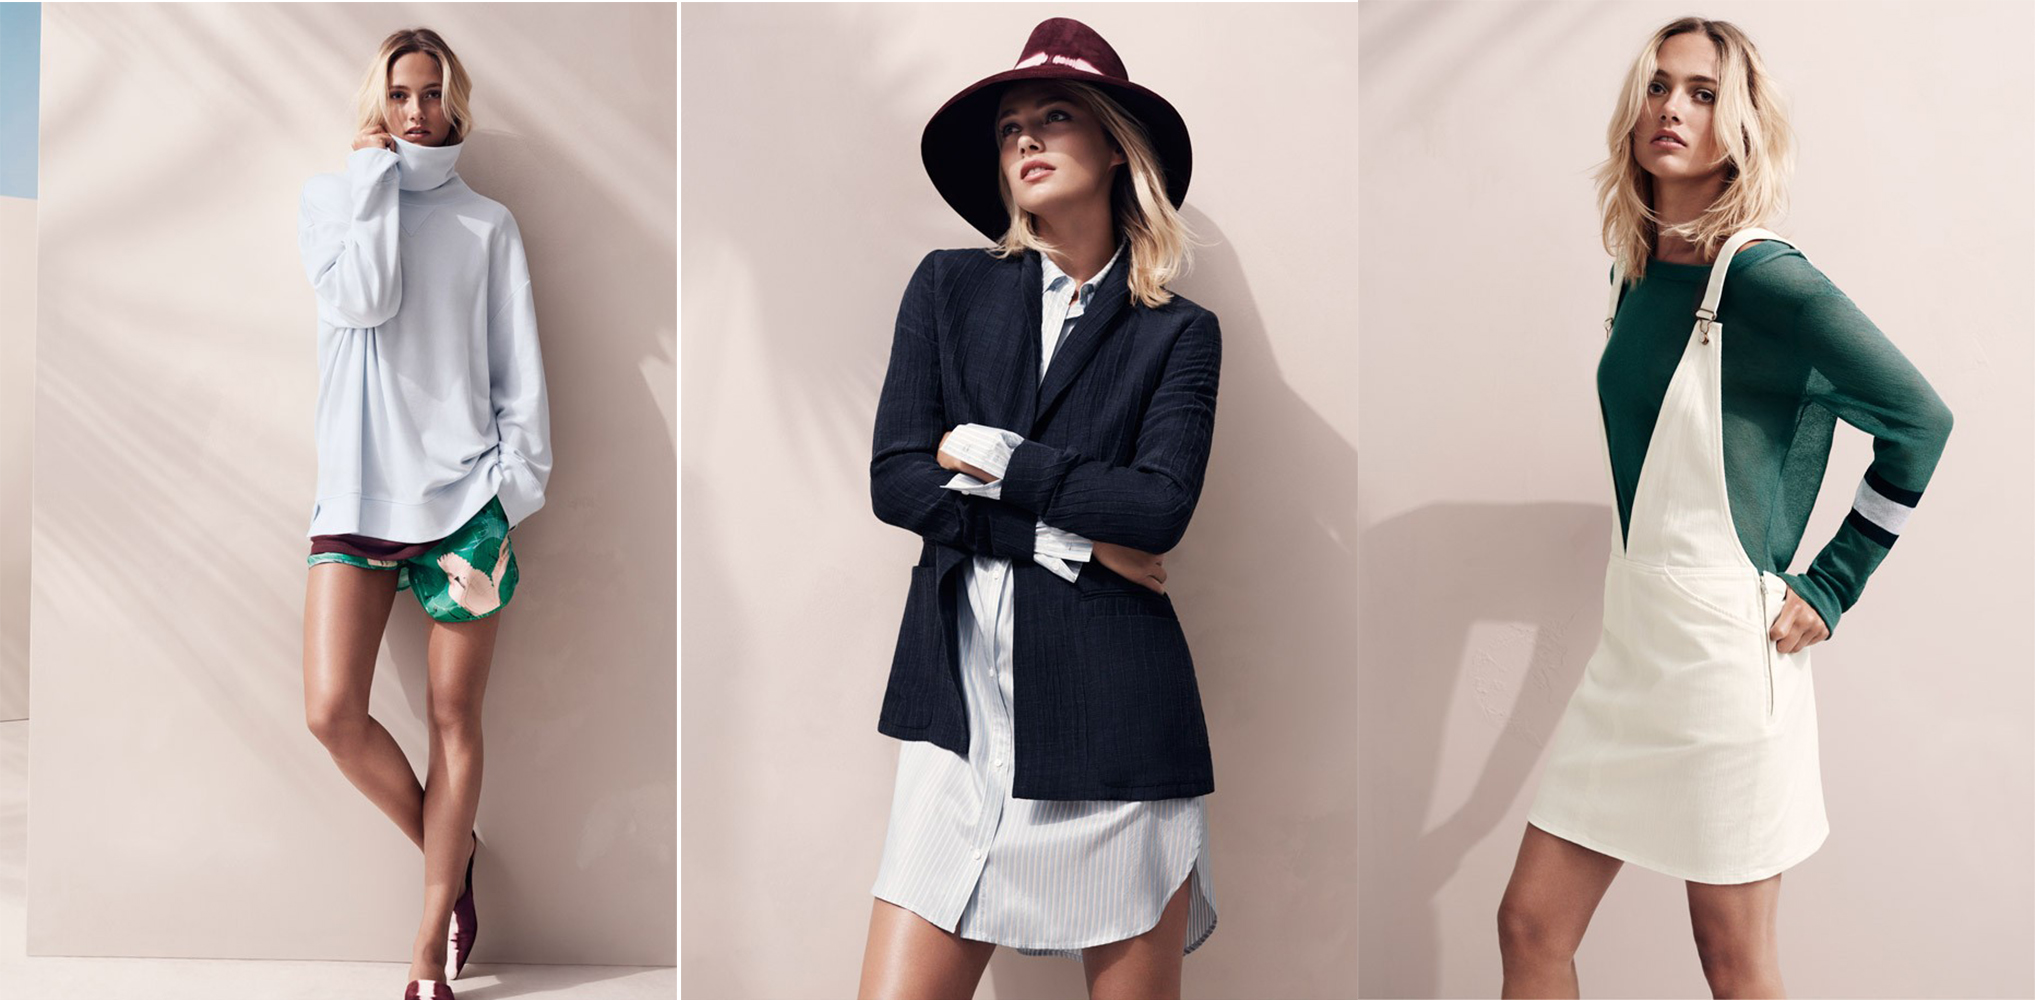 to wear - H&m spring studio collection video